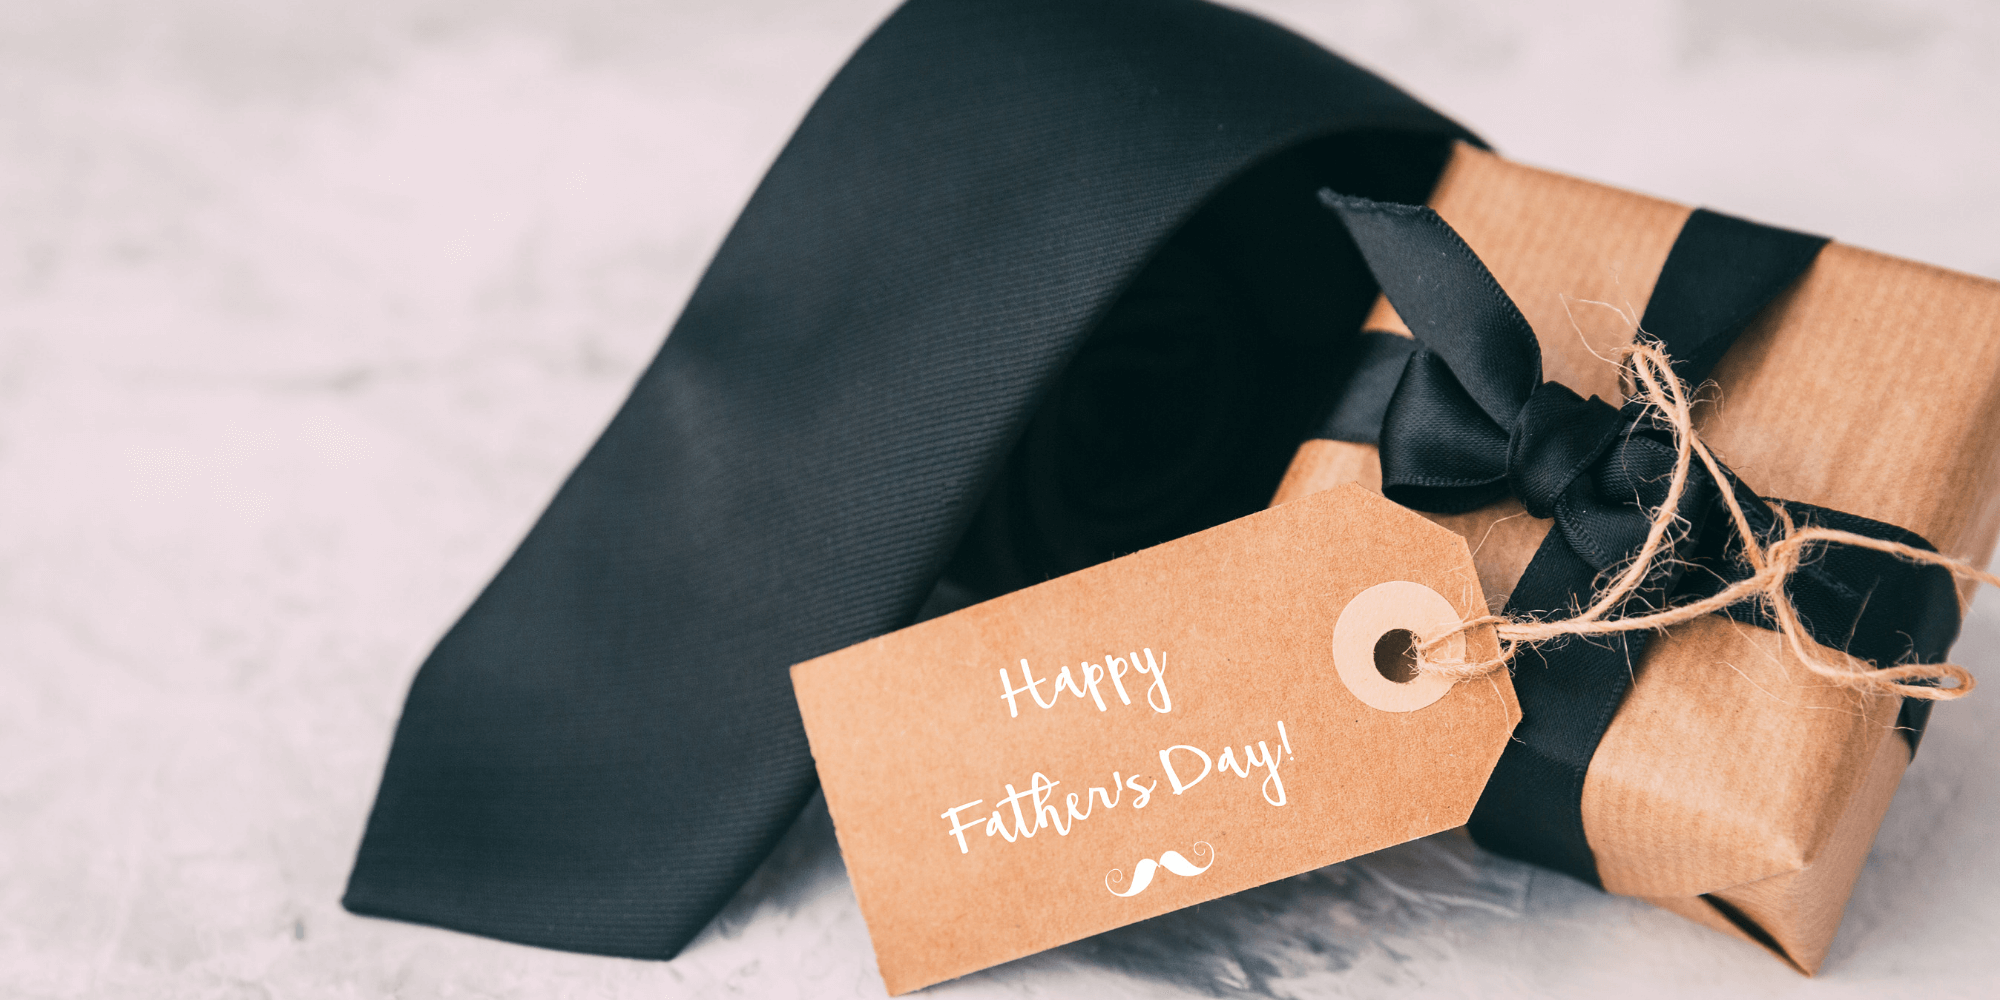 Happy Father's Day gift and tie